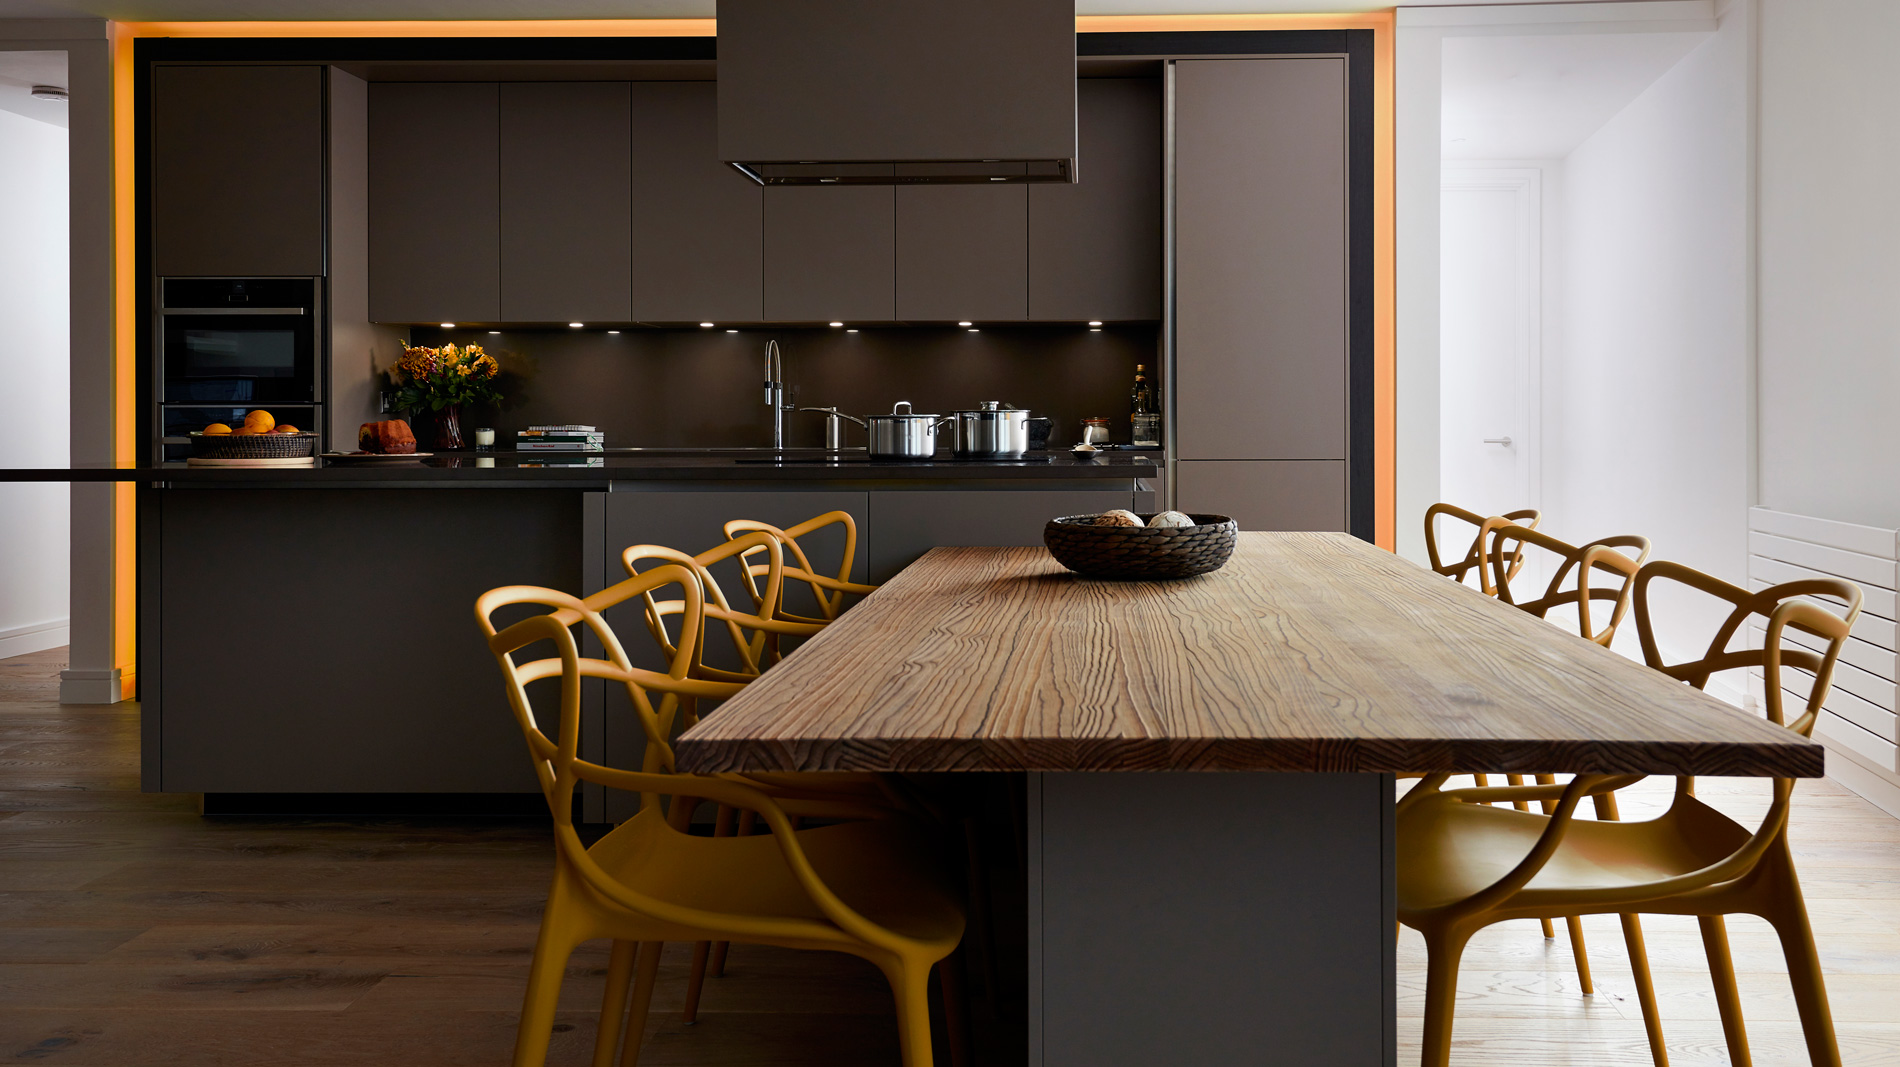 Bespoke kitchen in Battersea London